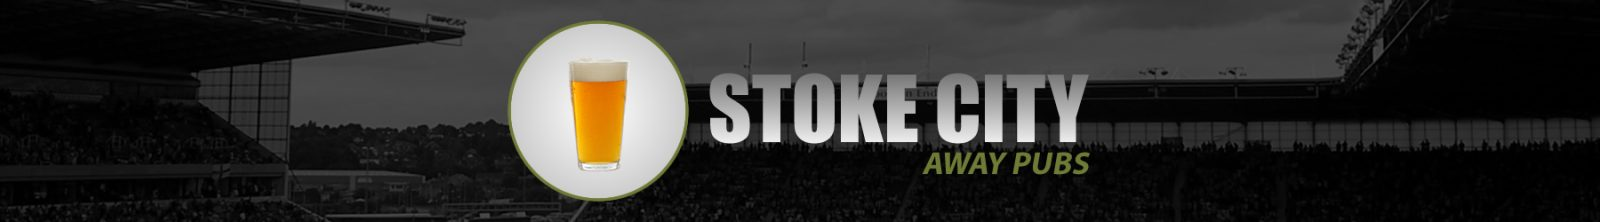 Stoke City Away Pubs